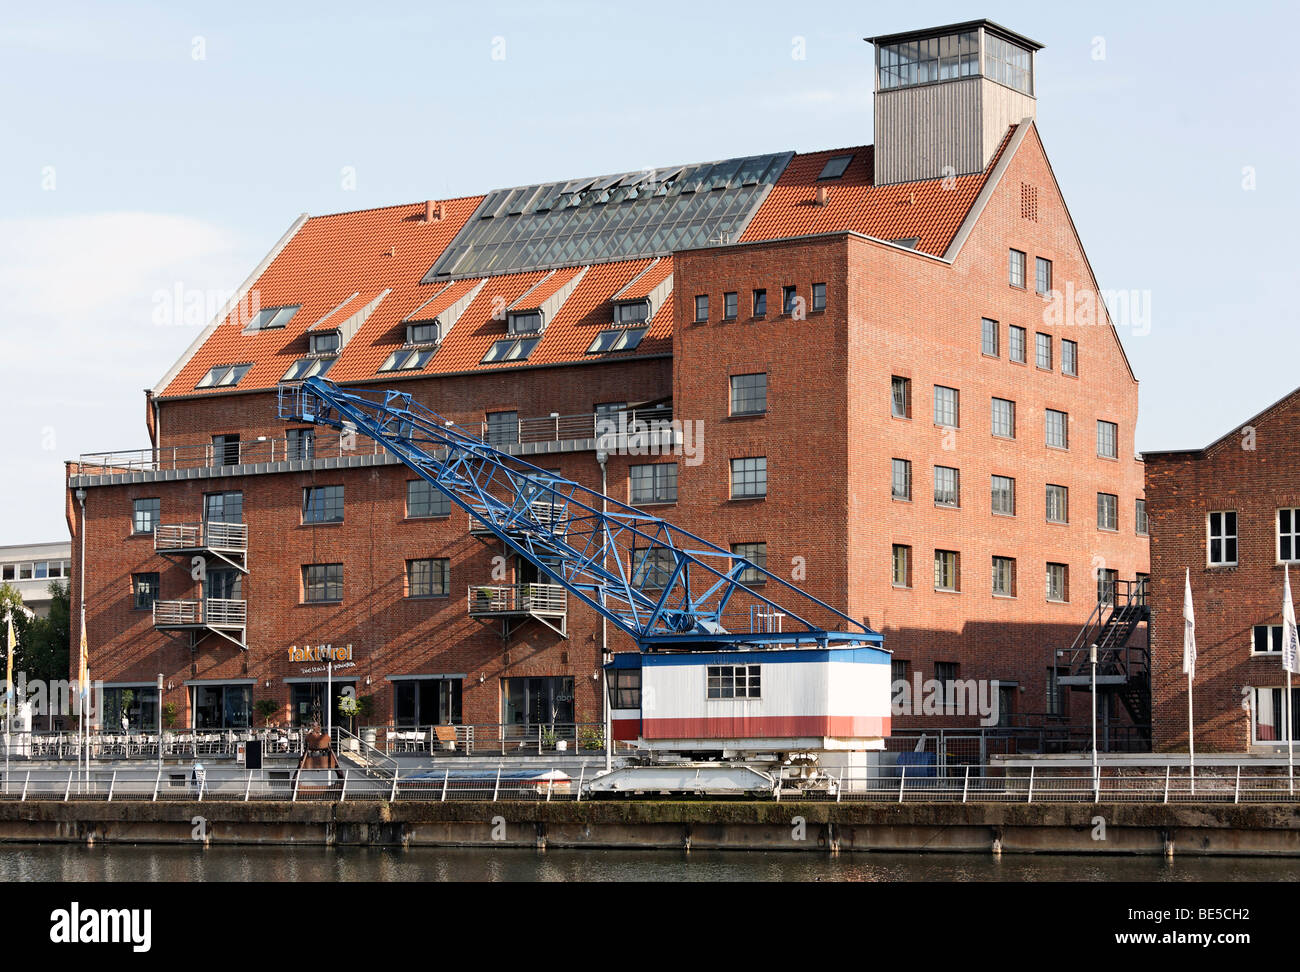 Renovated storage building, Faktorei 21, historical harbor crane, inner harbor, Duisburg, Ruhrgebiet area, North Stock Photo